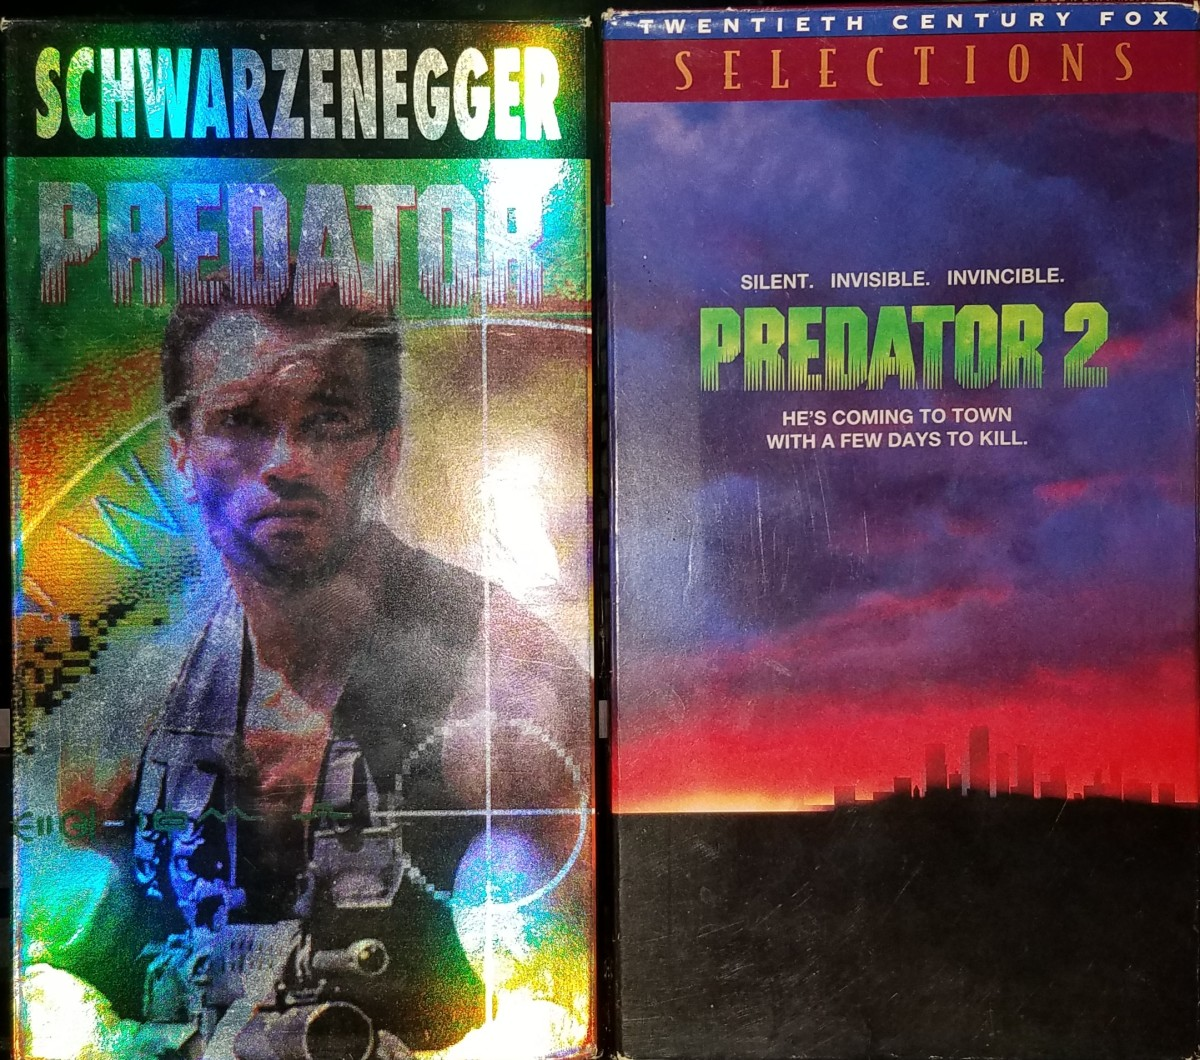 My personal VHS tapes of the first two films.